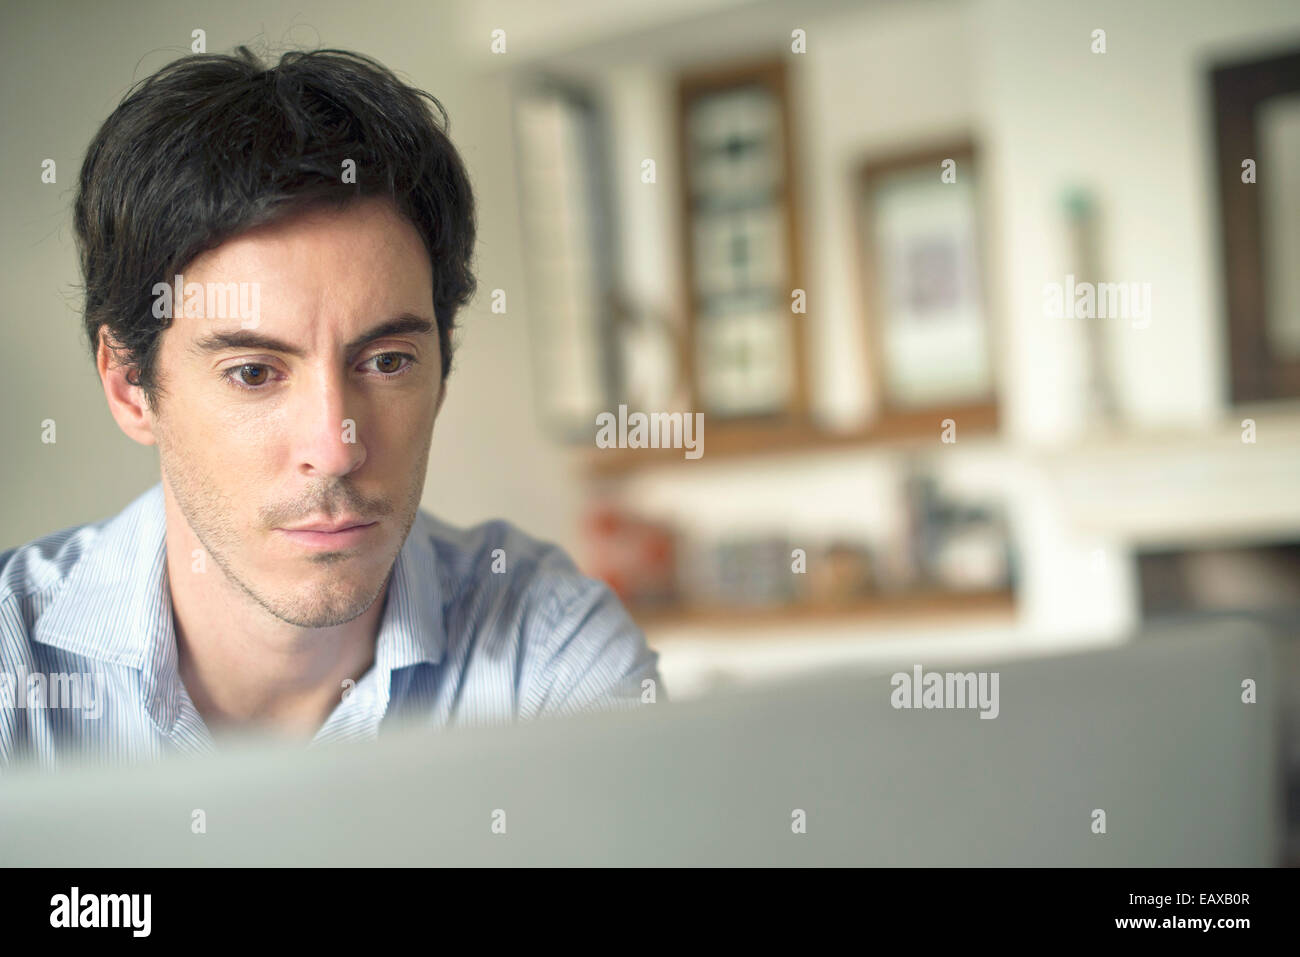 Man staring at laptop computer - Stock Image